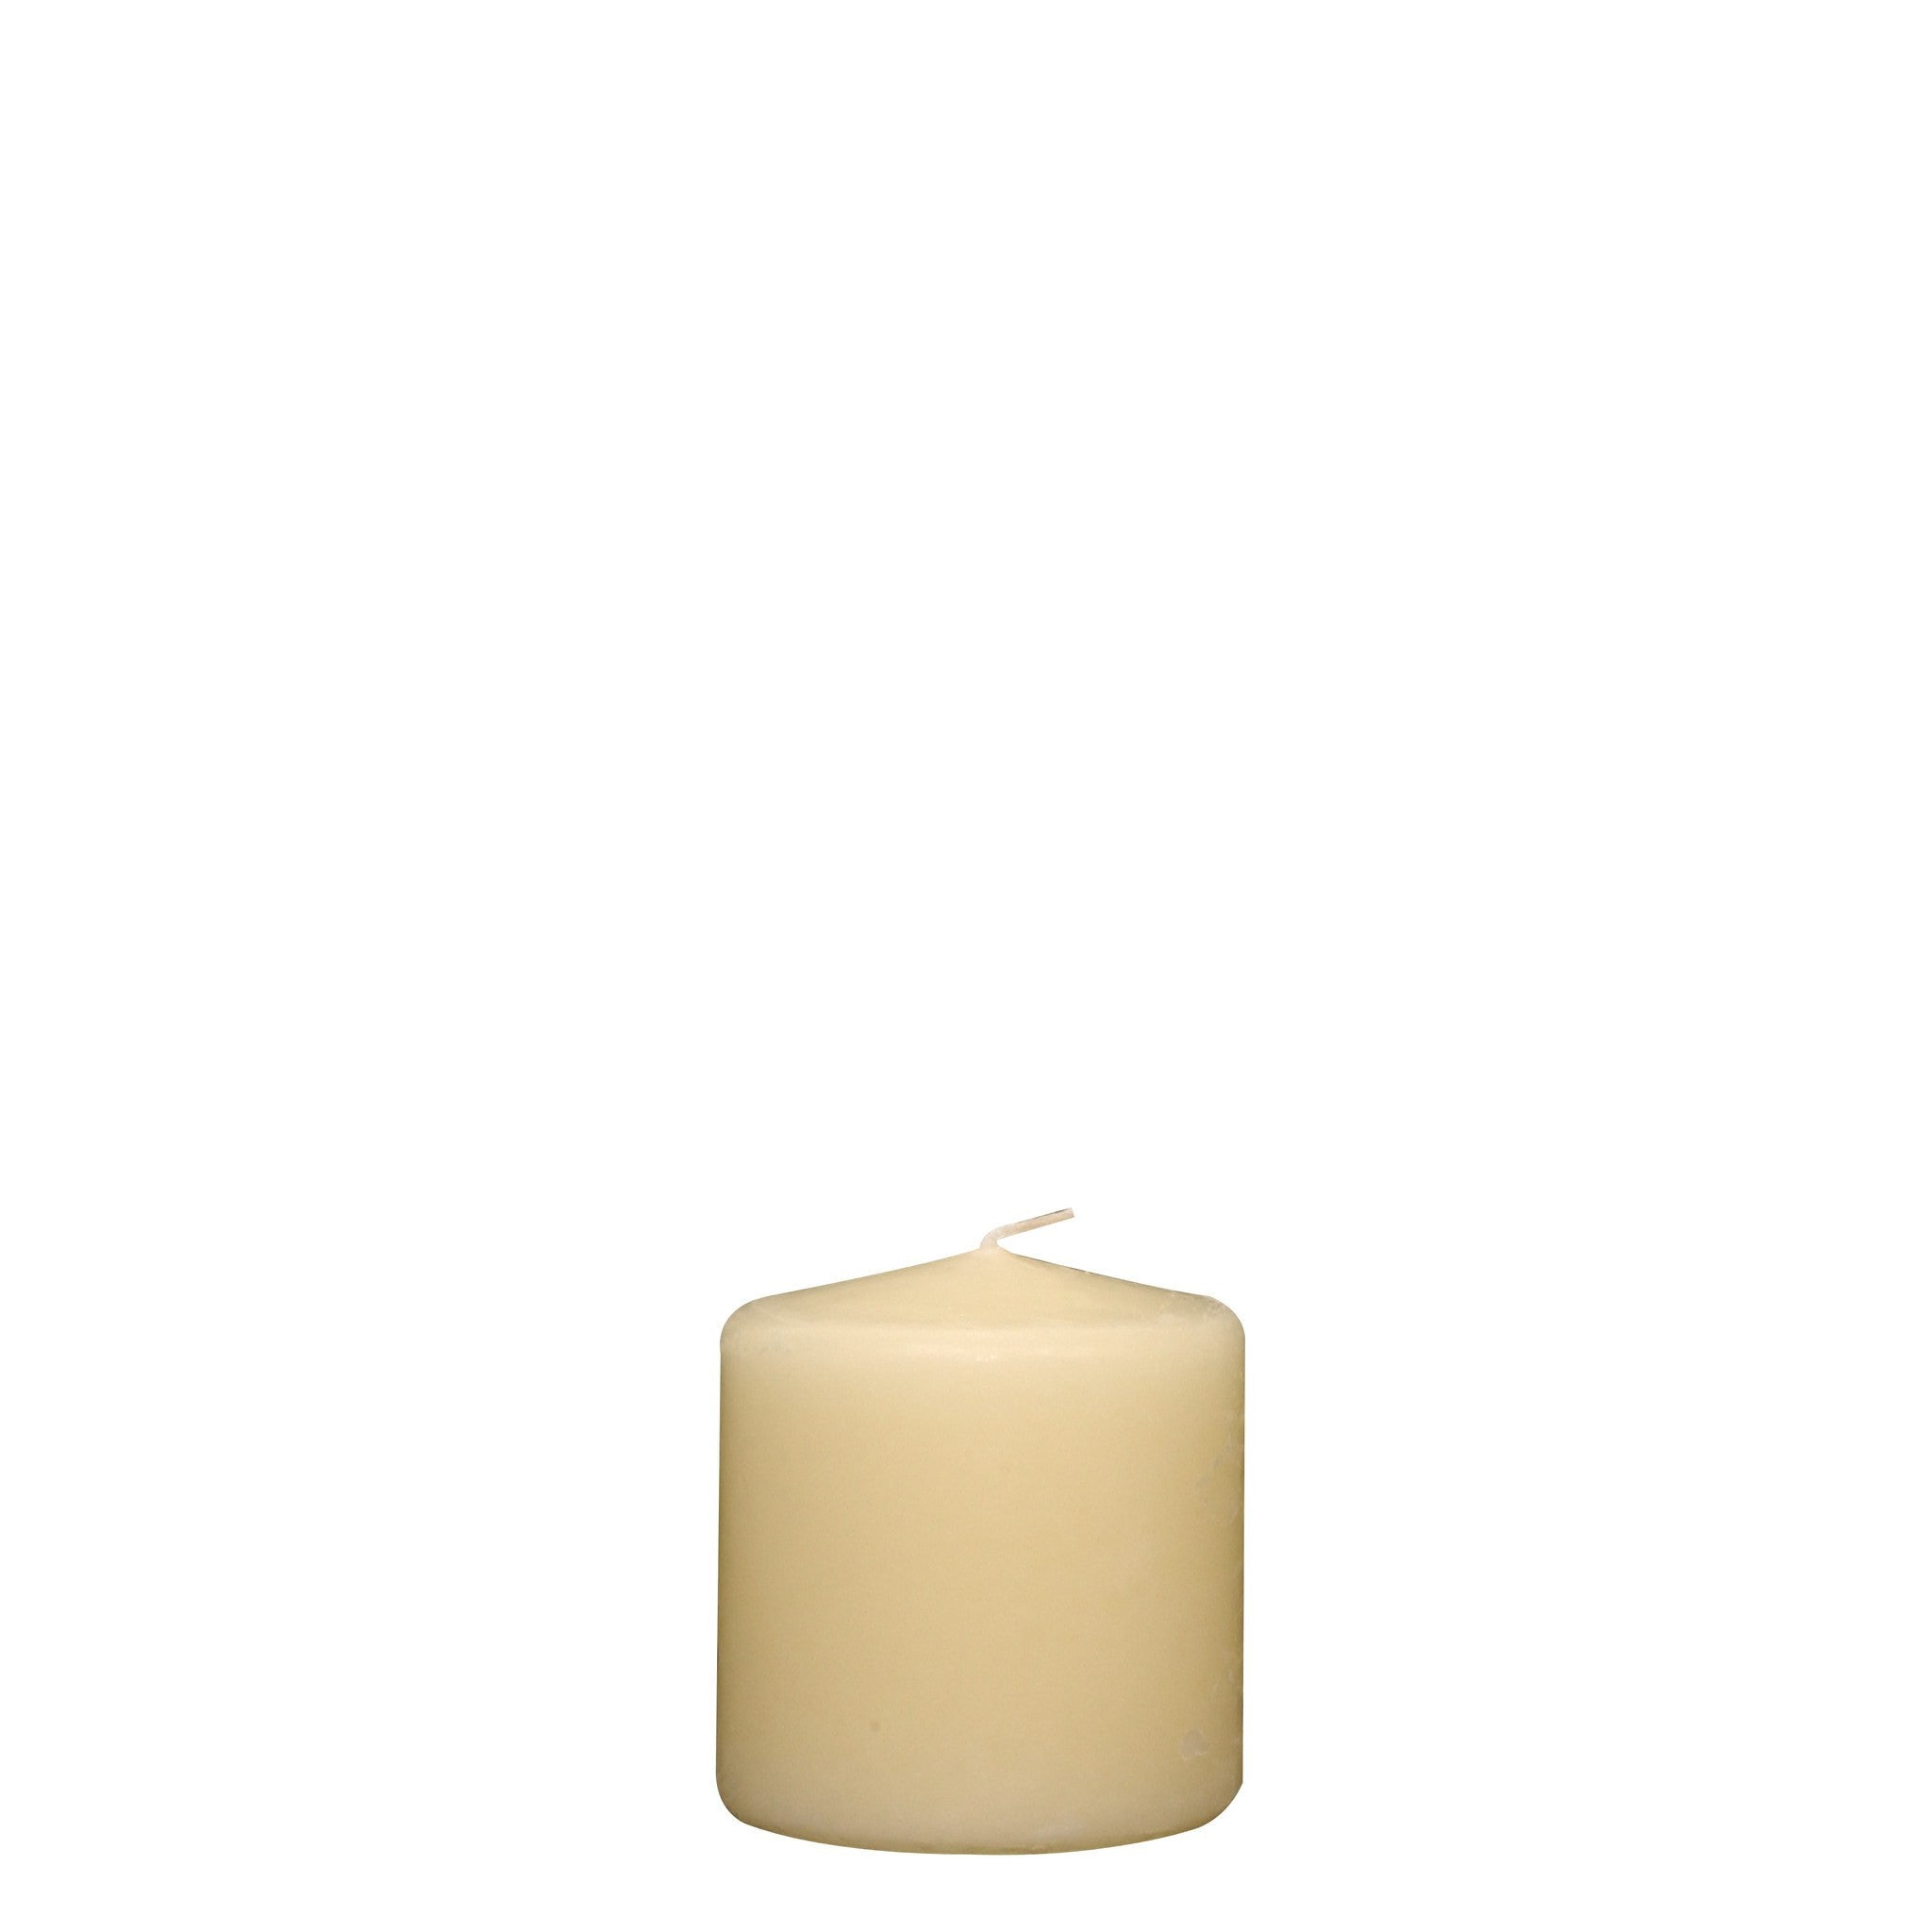 3x3 Unscented Ivory Pillar Candle - Candlemart.com - 3